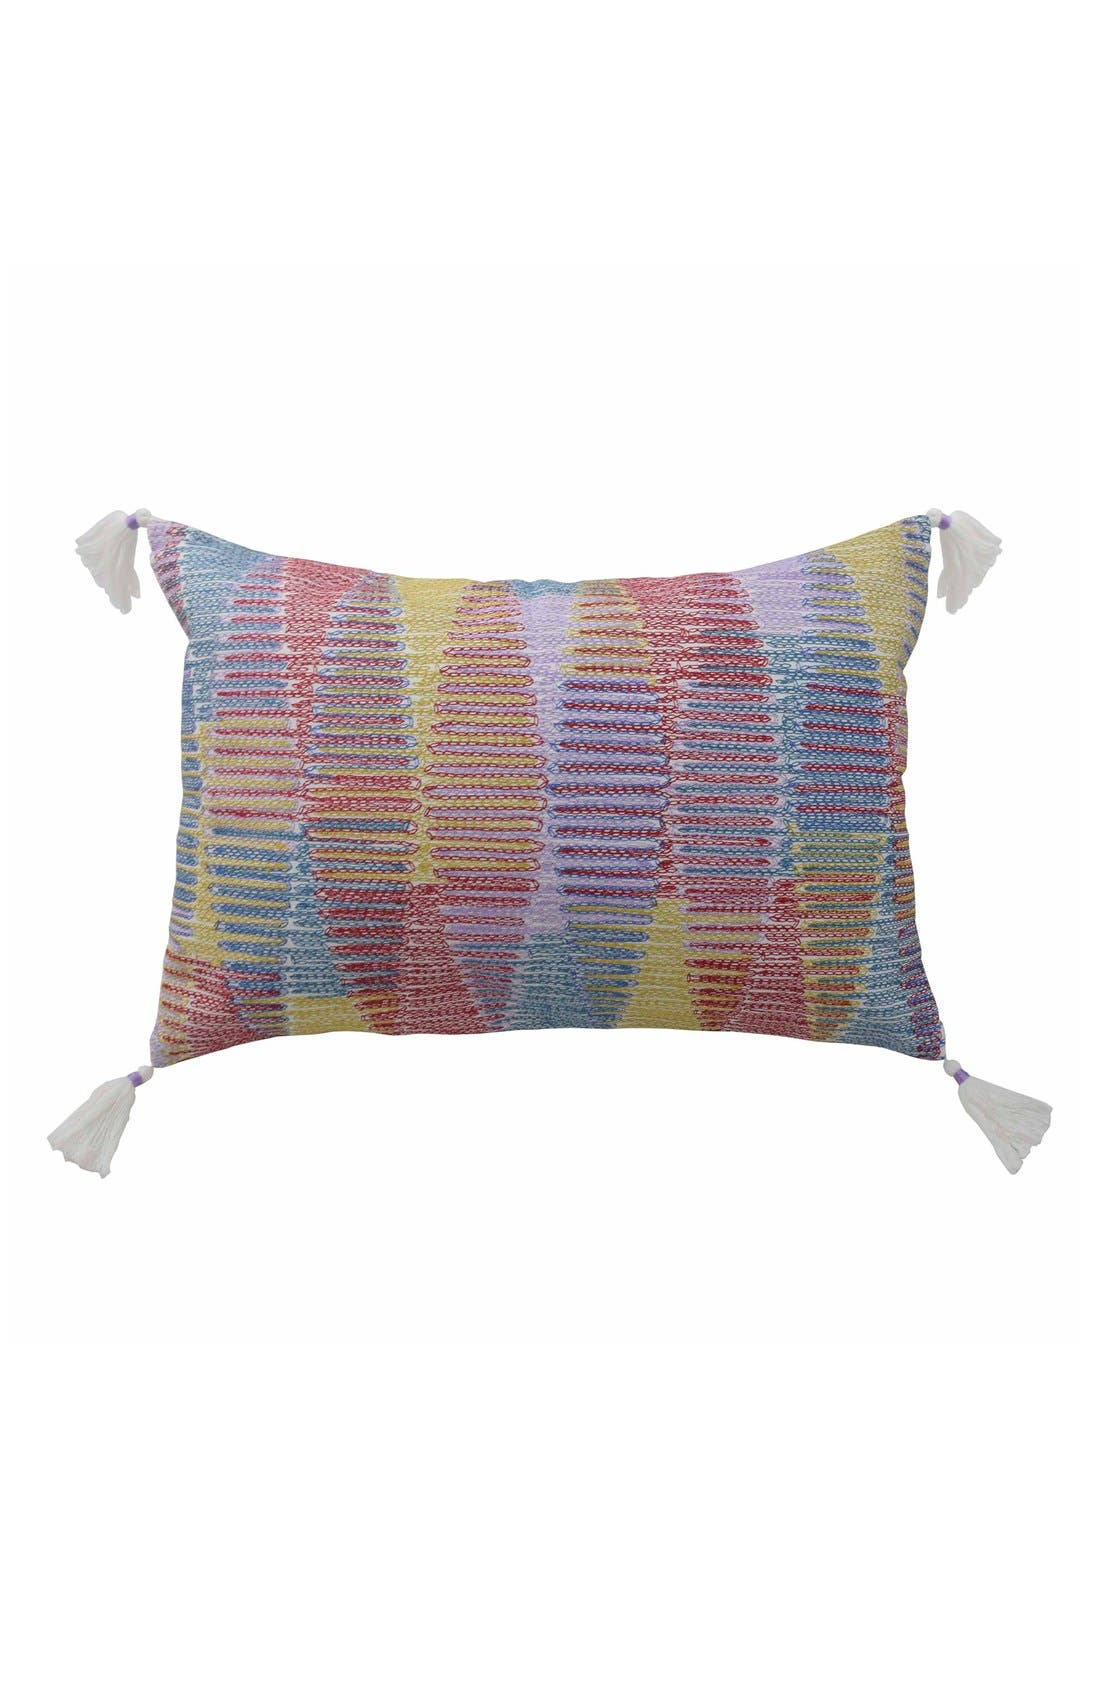 BLISSLIVING HOME 'Tanzania Malika' Pillow